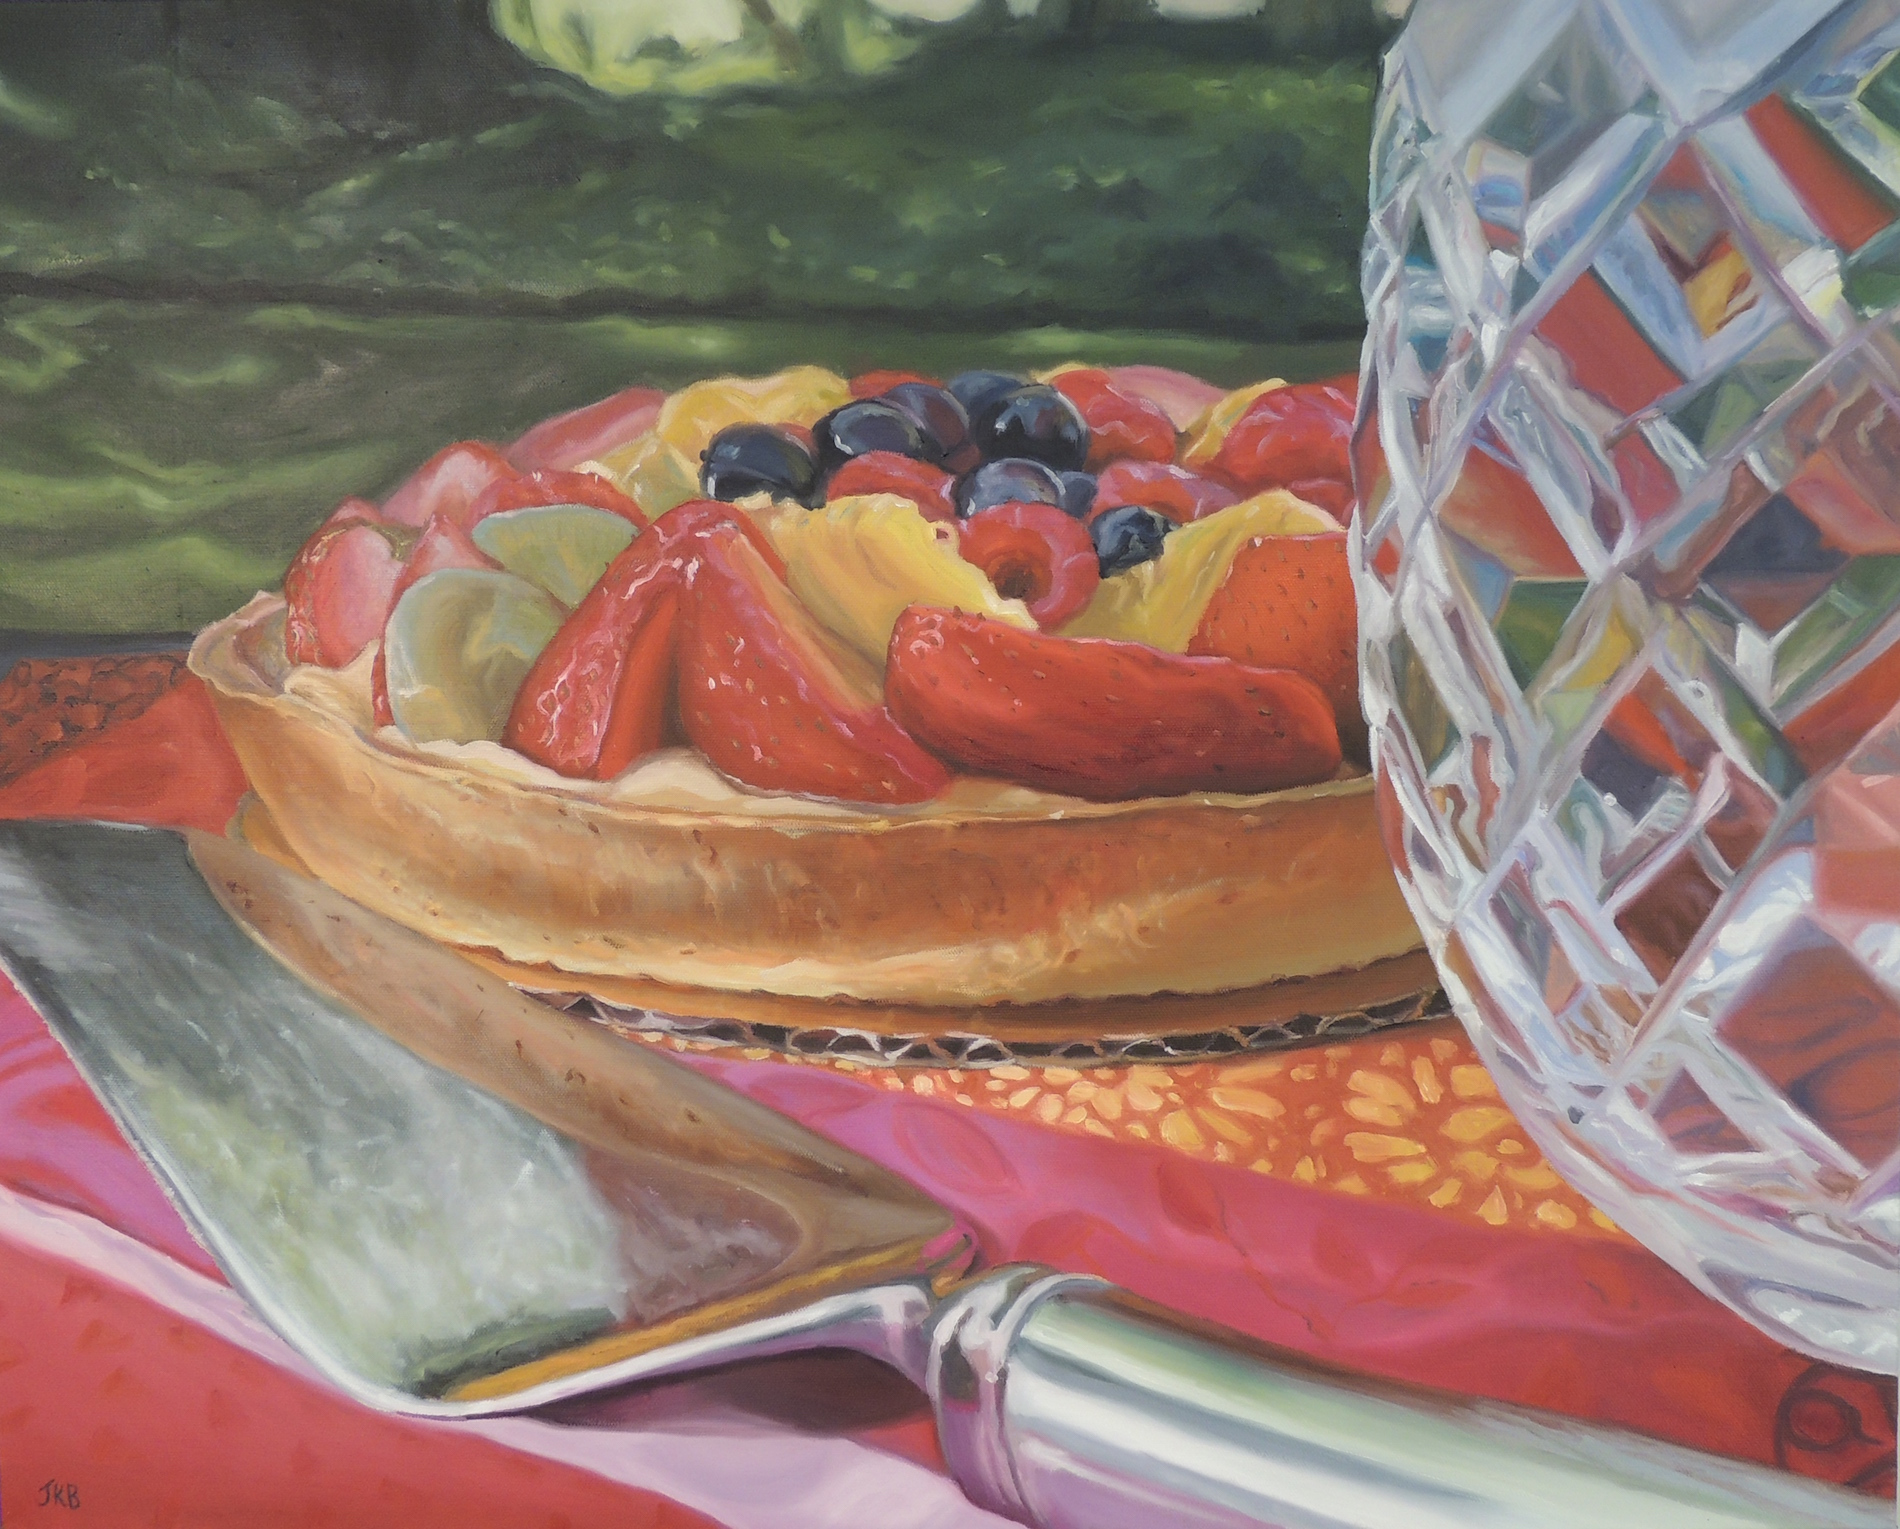 Vibrant, colorful fruit tart awaiting consumption.